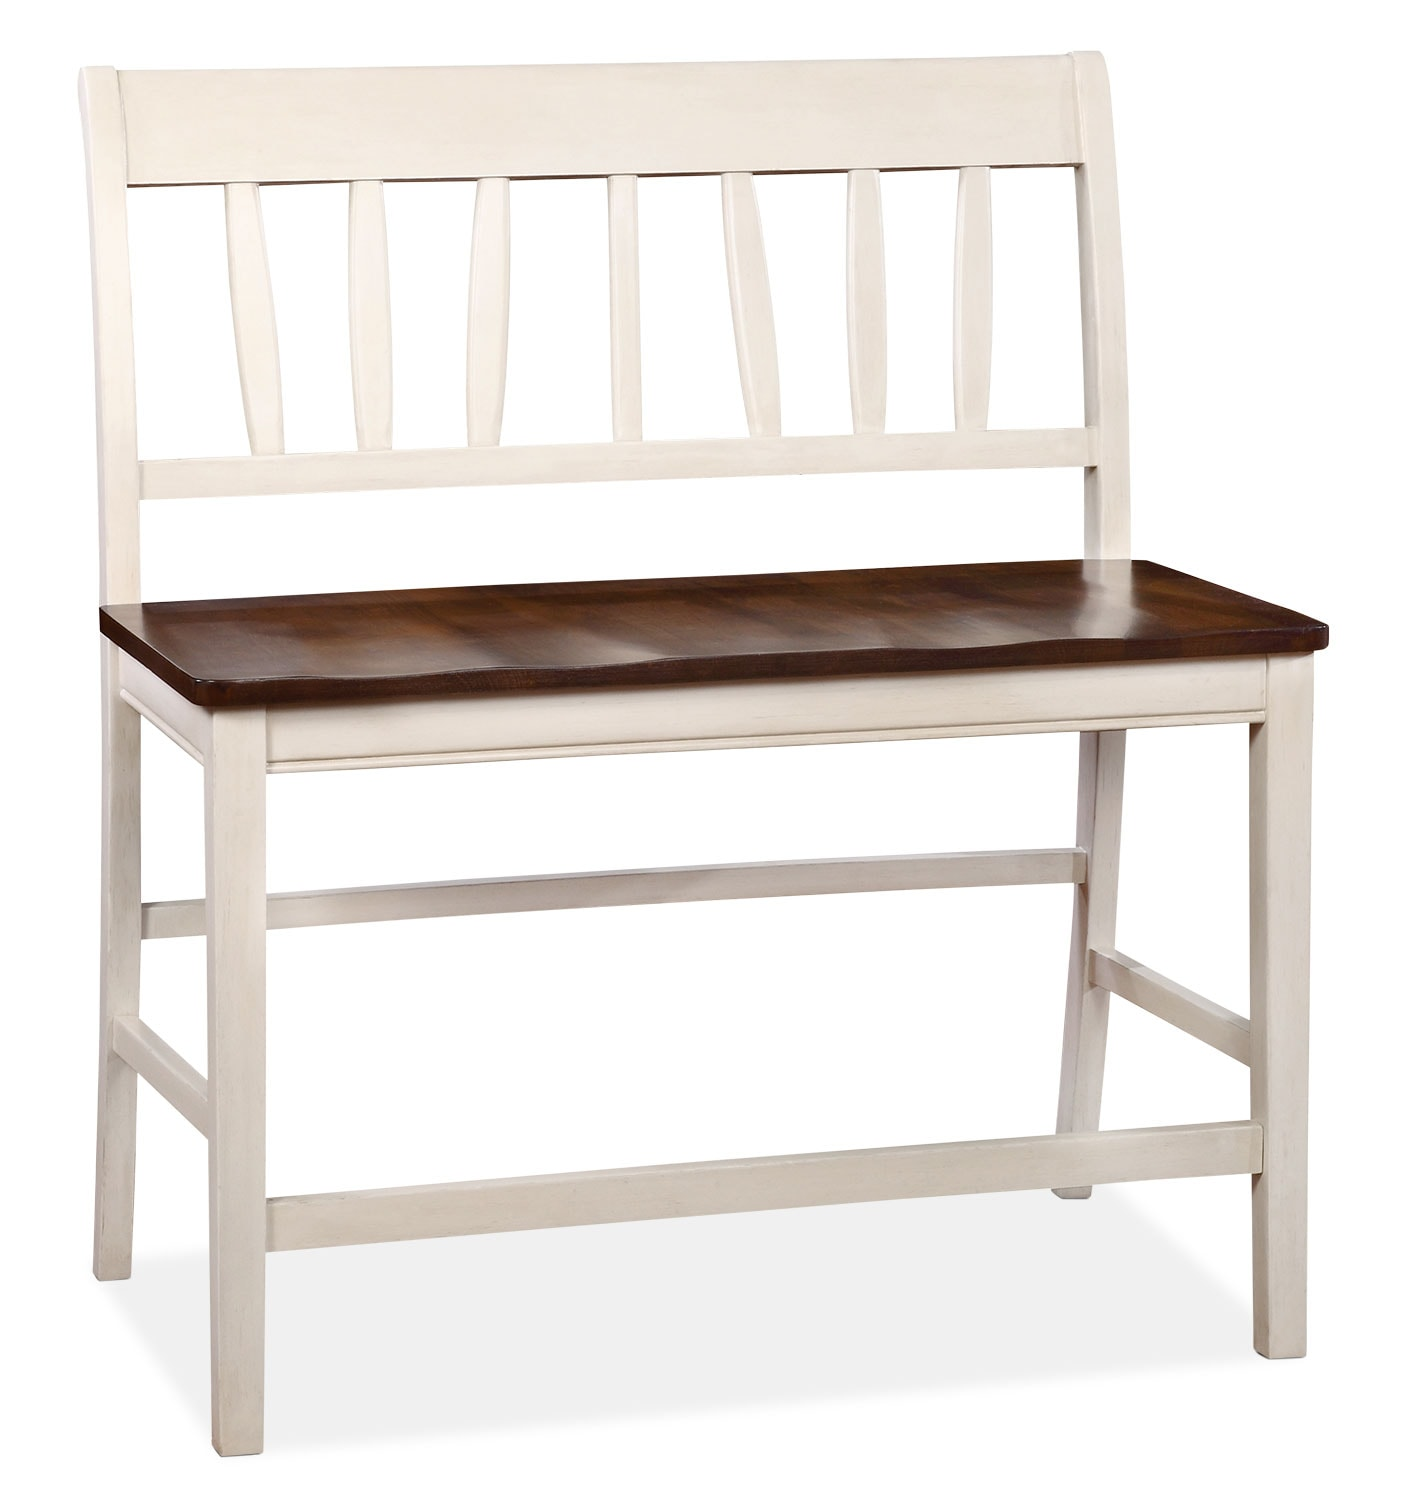 Dining Room Furniture - Nyla Counter-Height Dining Bench – Antique White and Cherry